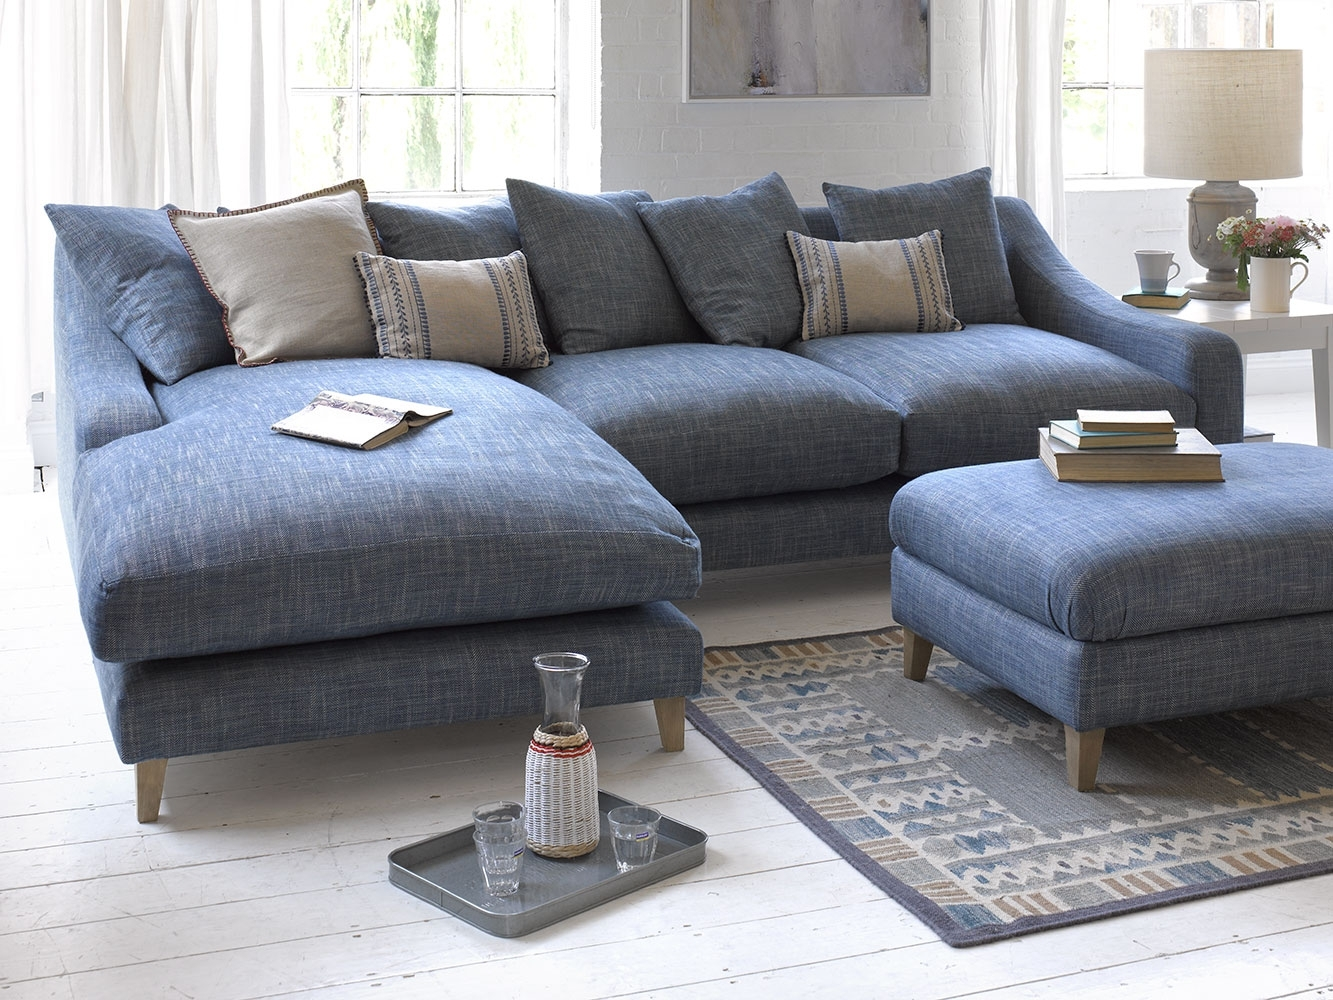 Oscar Chaise Sofa | Comfy Classic Chaise | Loaf With Regard To Long Chaise Sofas (View 4 of 10)